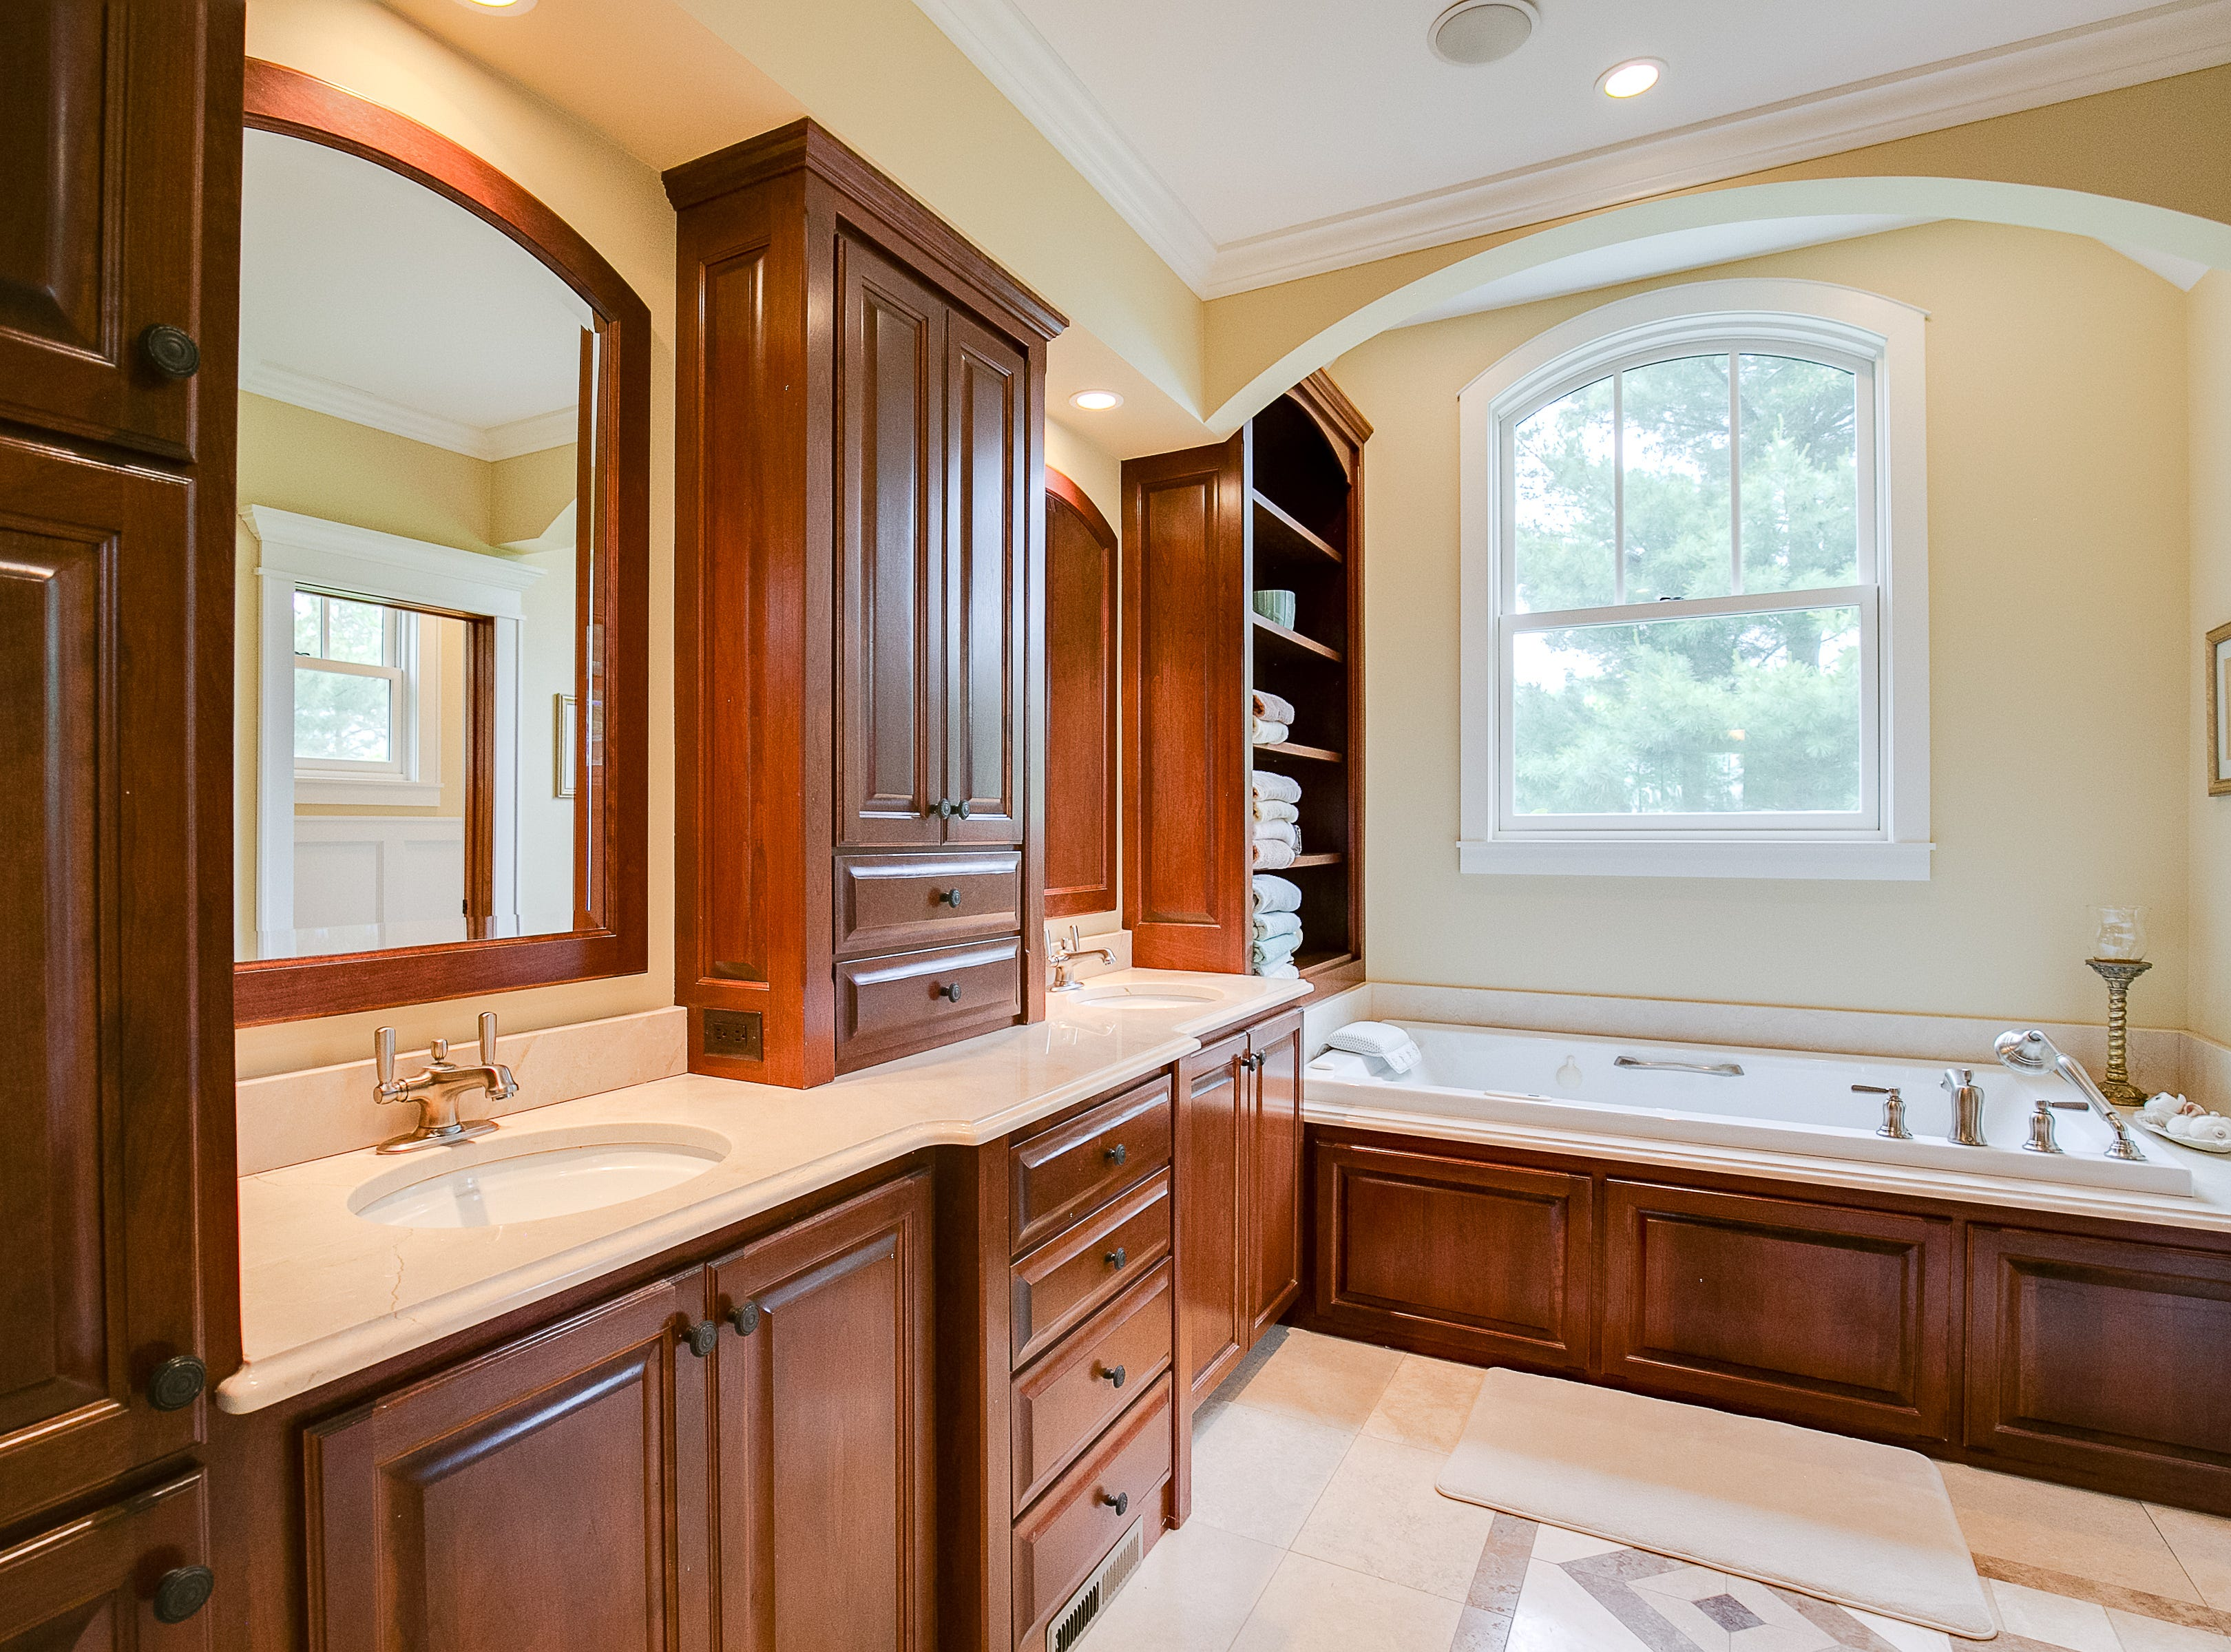 The master bath is resplendent with marble vanities and cherry built cabinetry, as well as a jetted tub and radiant floor heat.